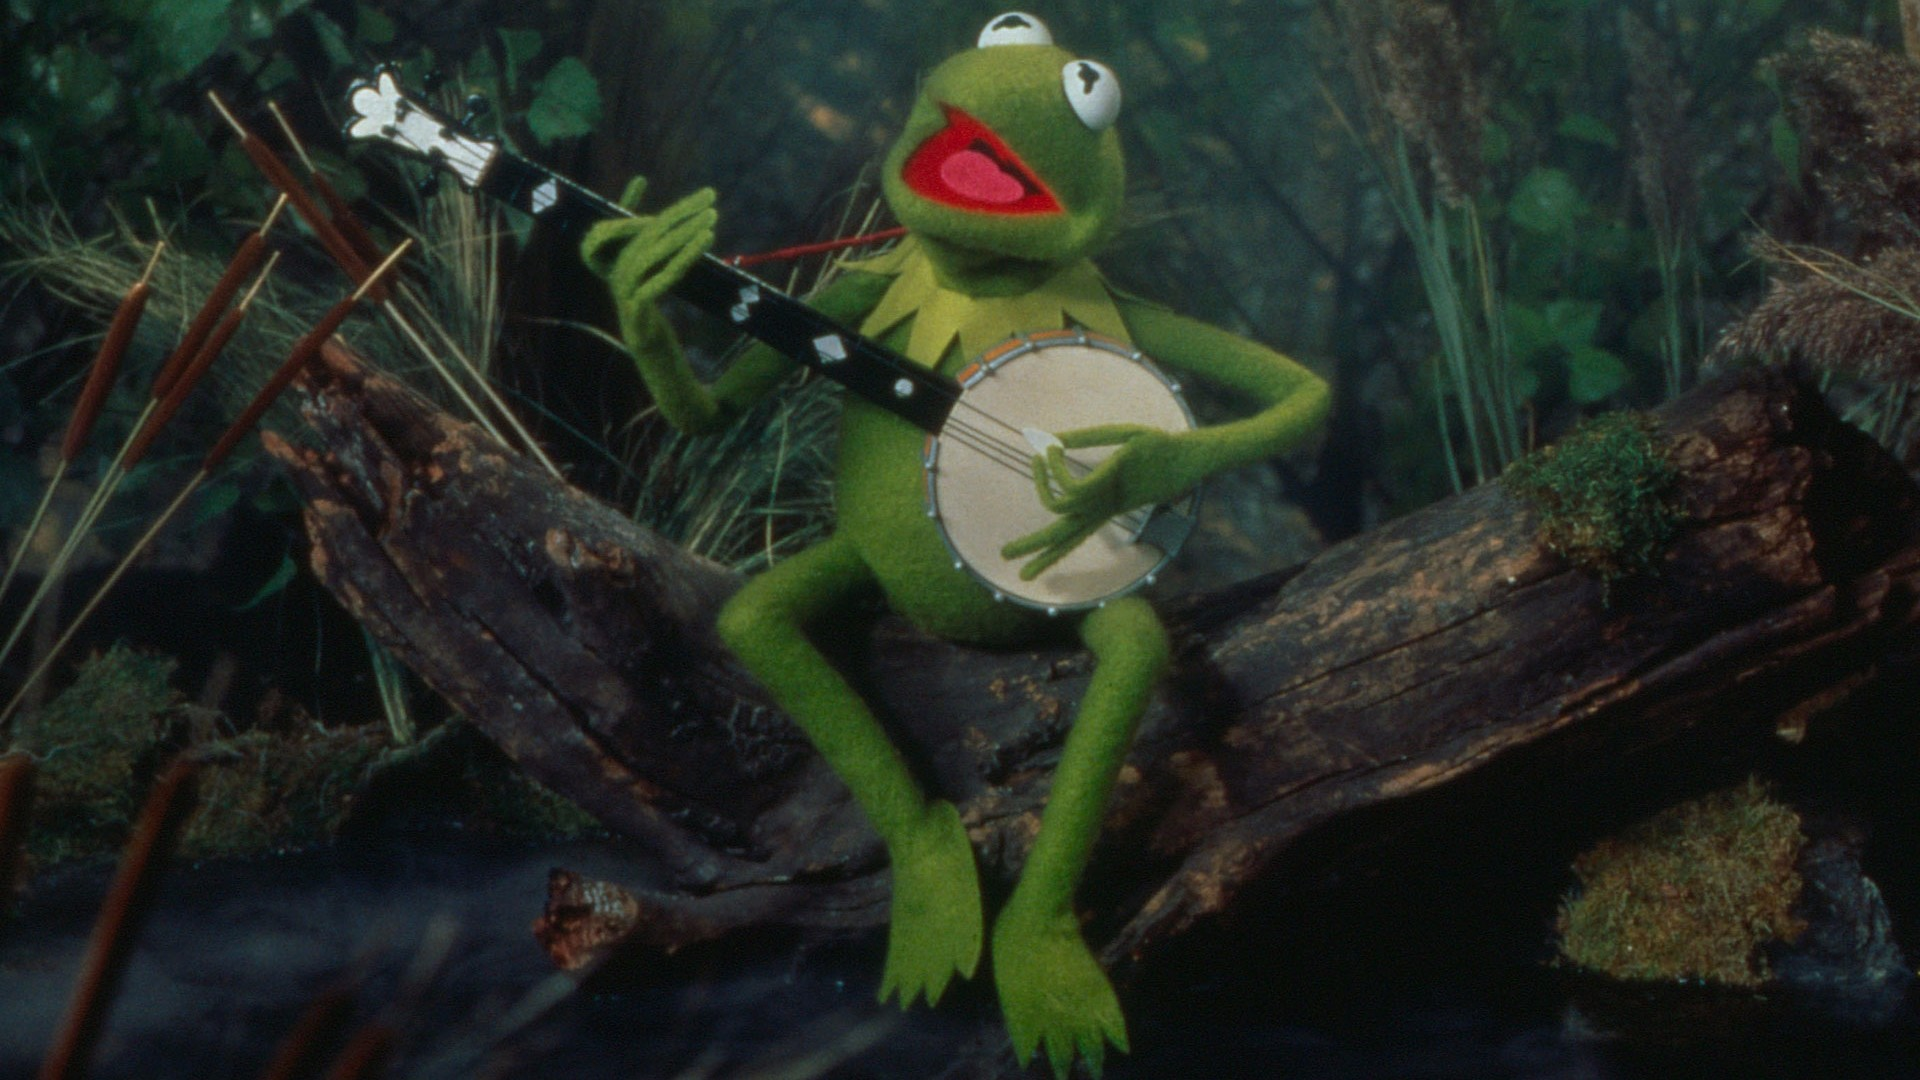 Hearts Kermit The Frog Free Wallpaper and Background